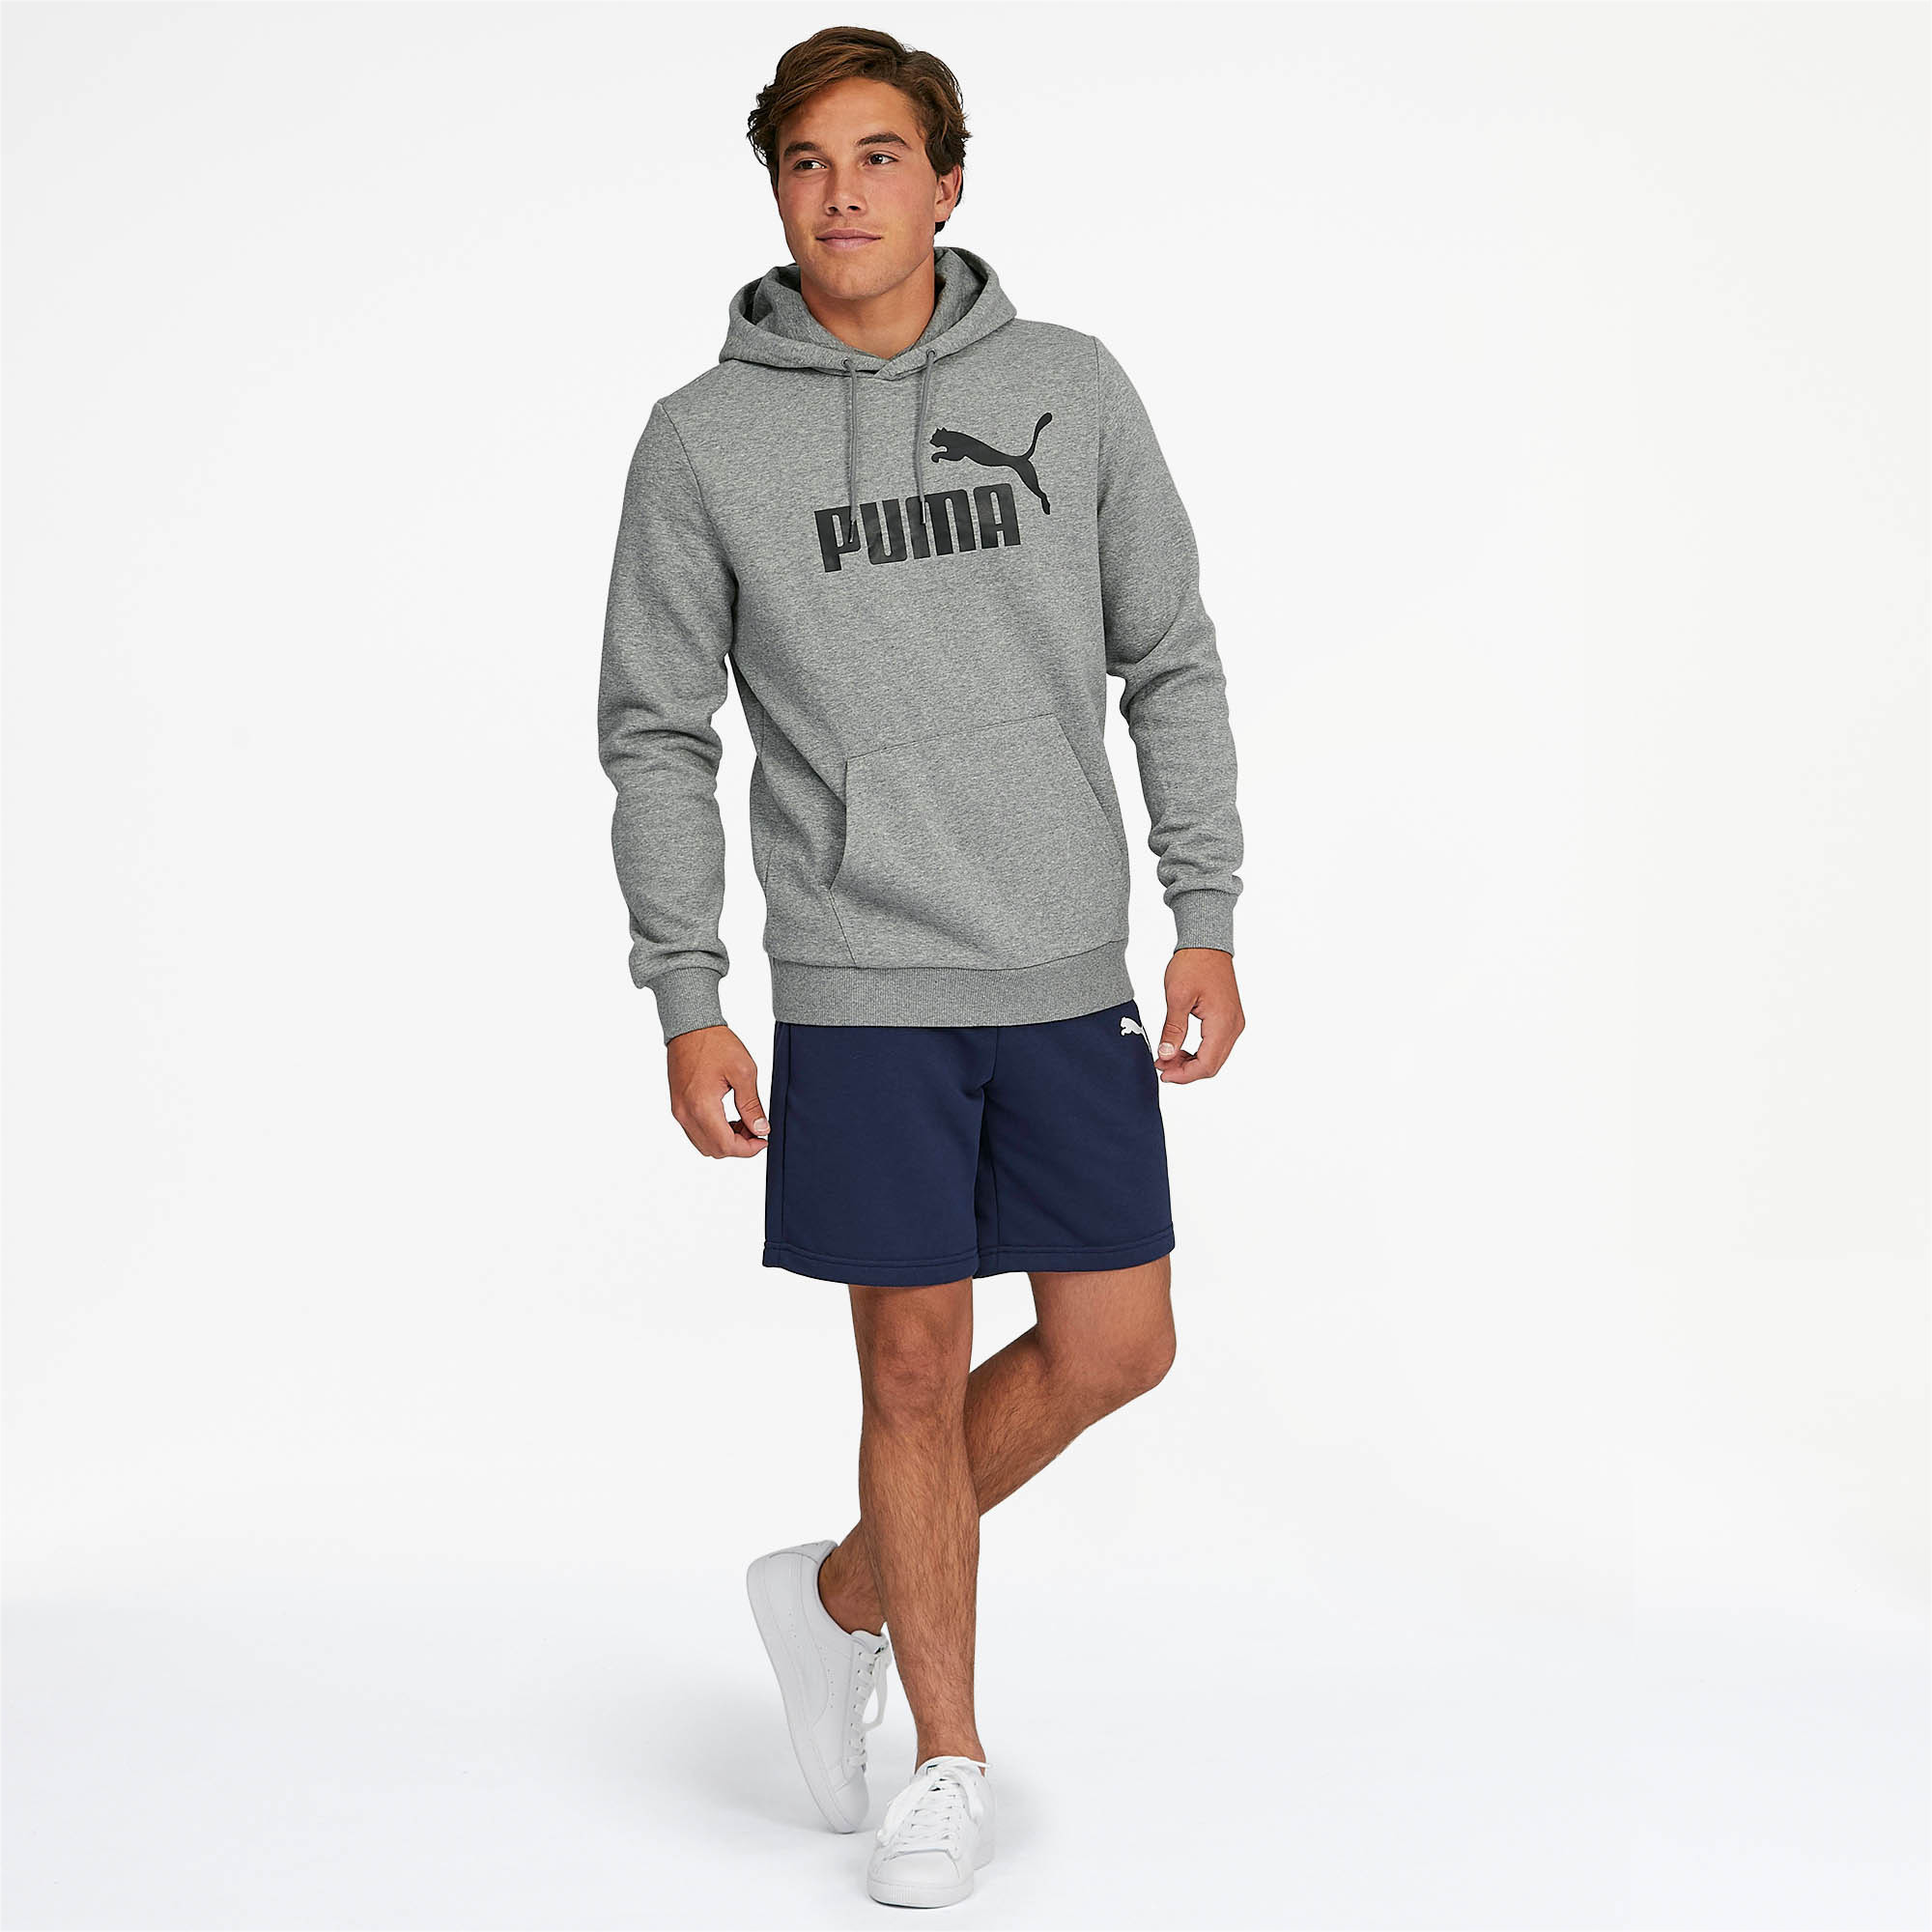 PUMA-Essentials-Men-039-s-Fleece-Hoodie-Men-Sweat-Basics thumbnail 12